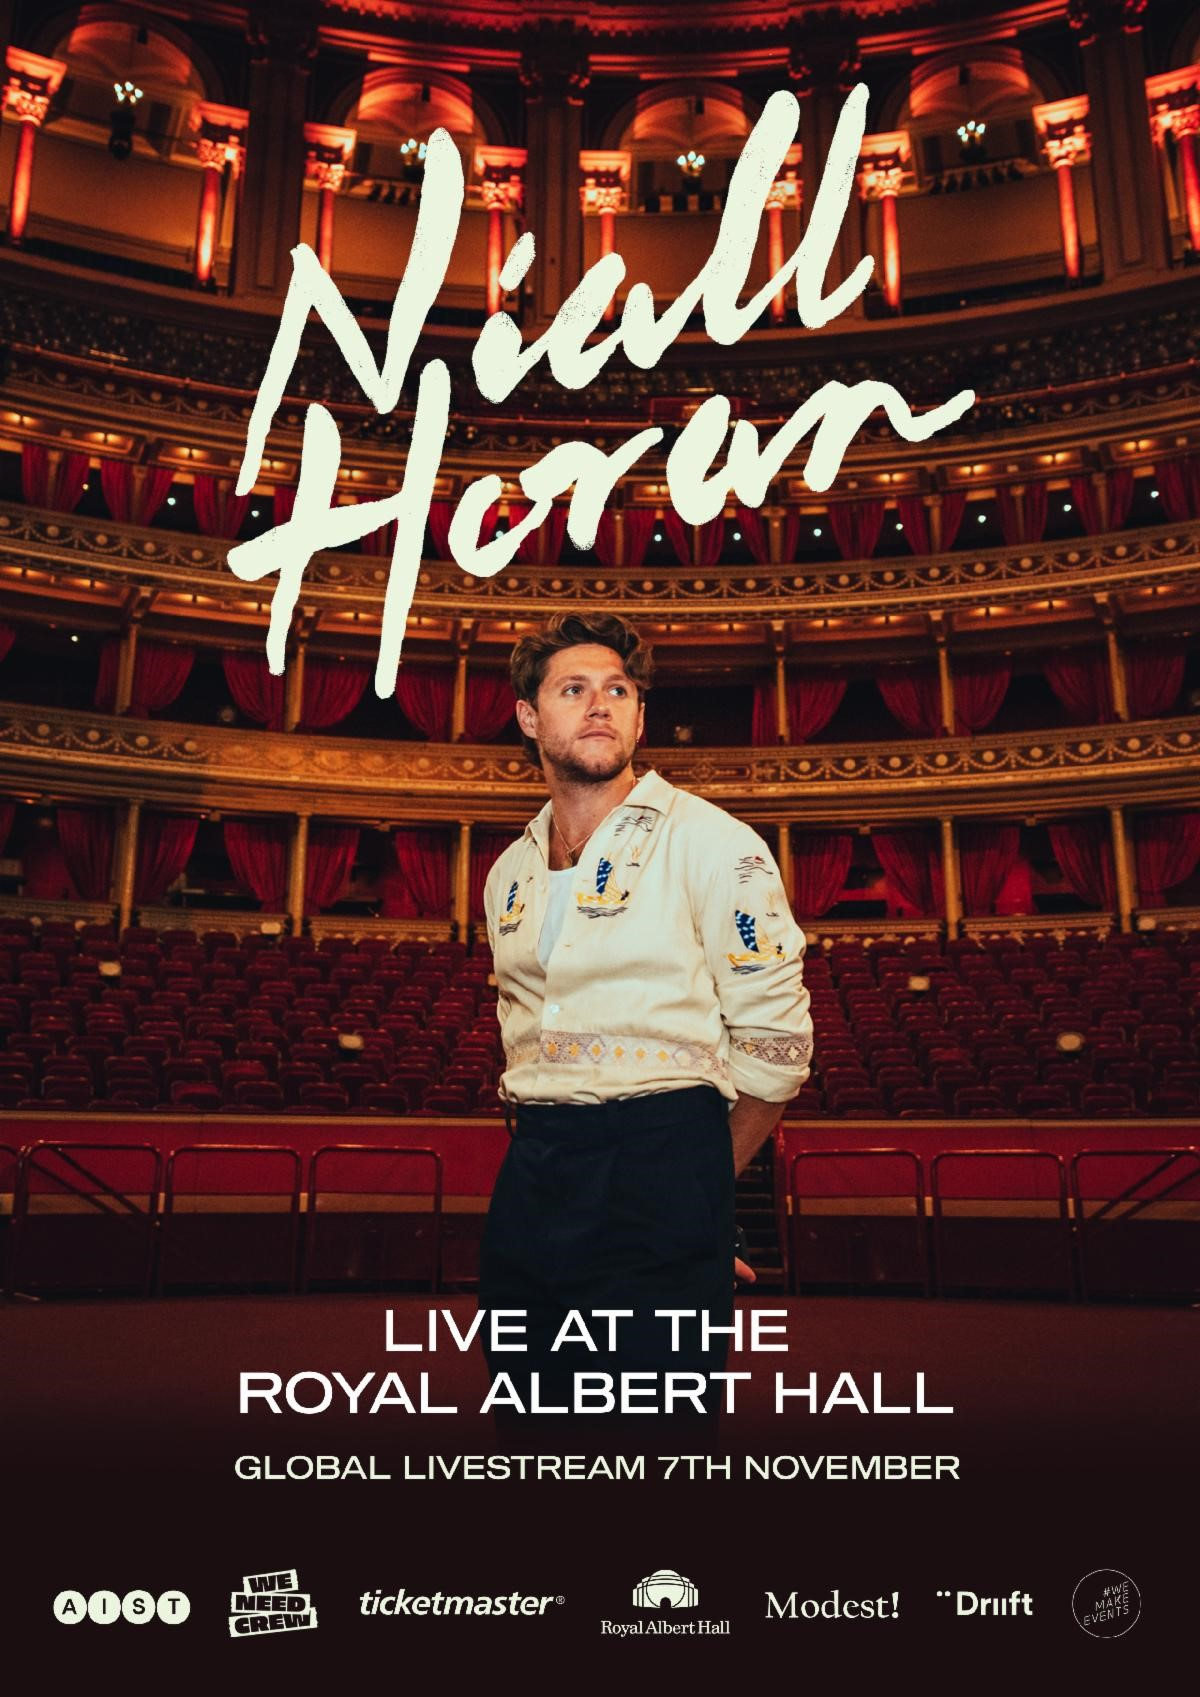 Niall Horan Announces Livestream Concert to Raise Money for #WeNeedCrew Relief Fund